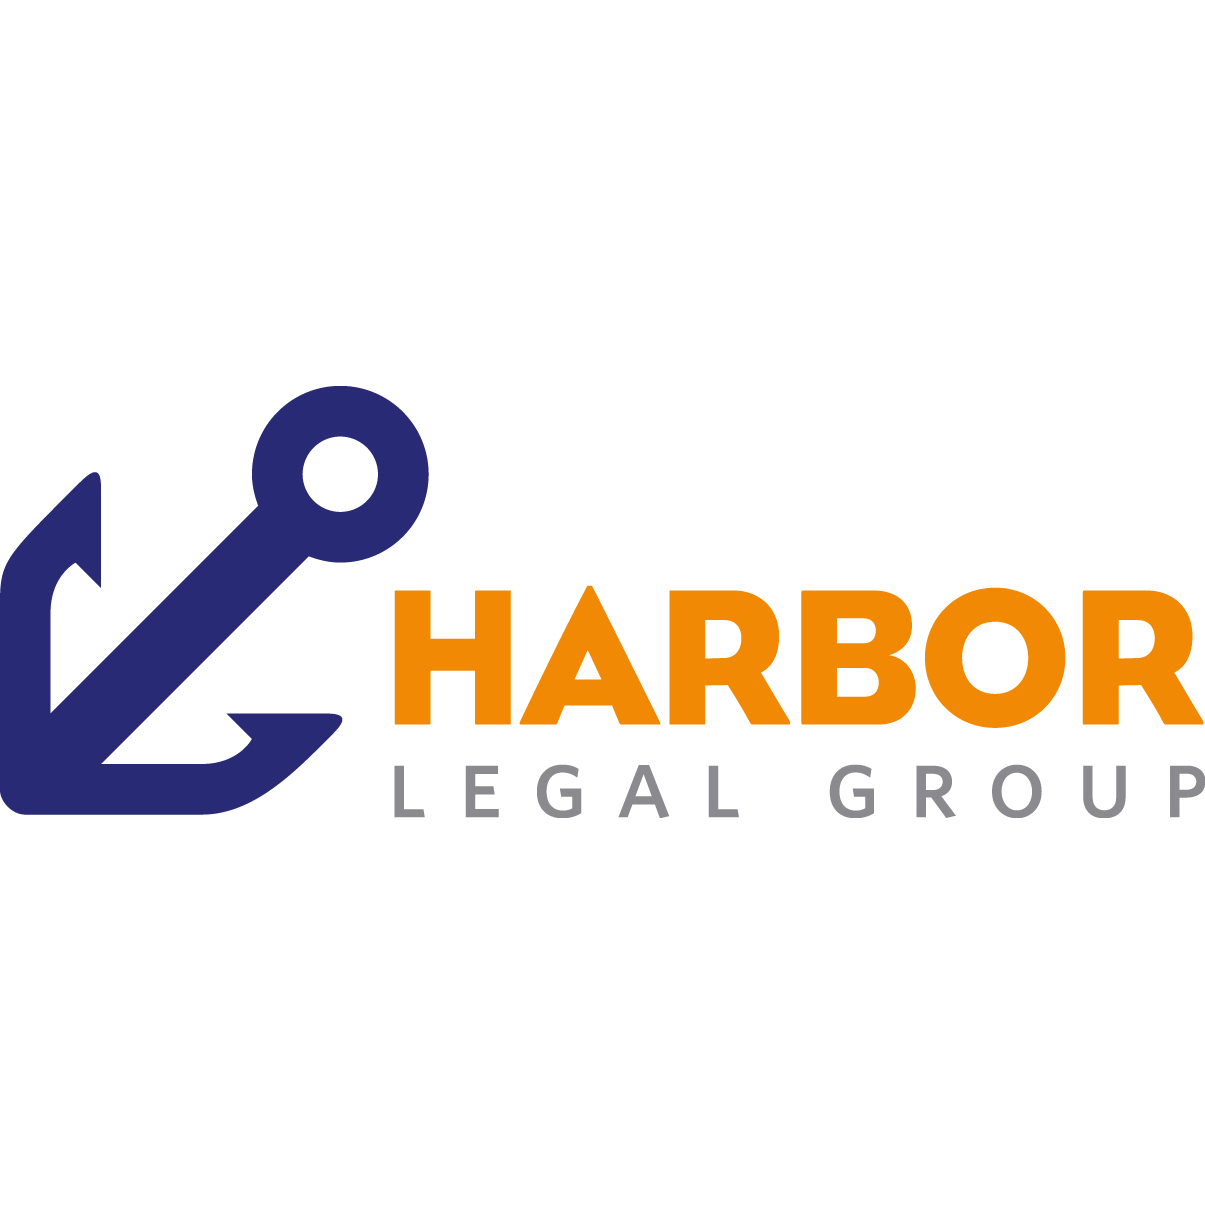 Harbor Legal Group 200 Union Blvd Suite 200 Lakewood, CO ...